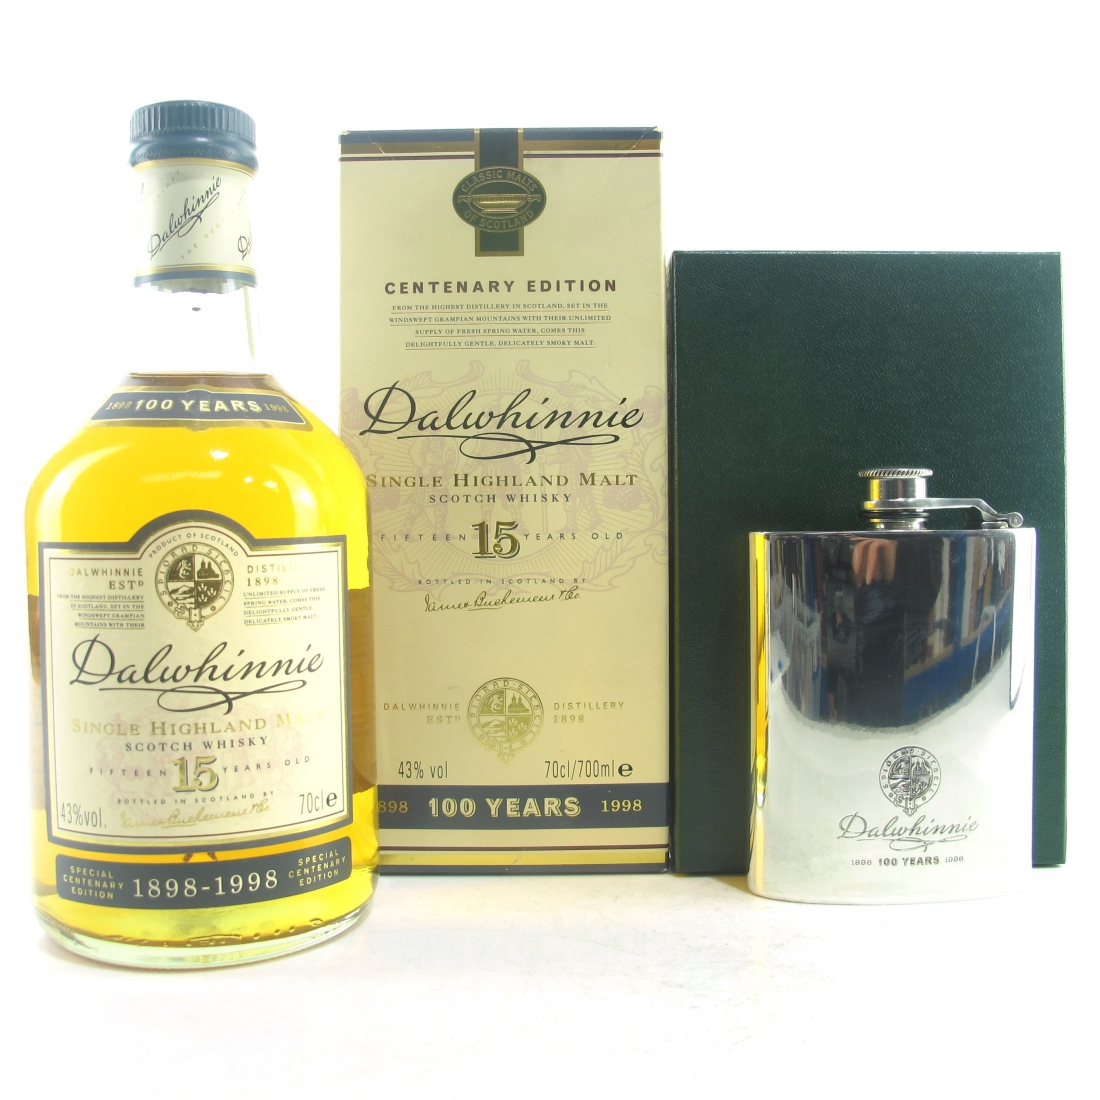 Dalwhinnie 15 Year Old Centenary Edition / Including Hip Flask